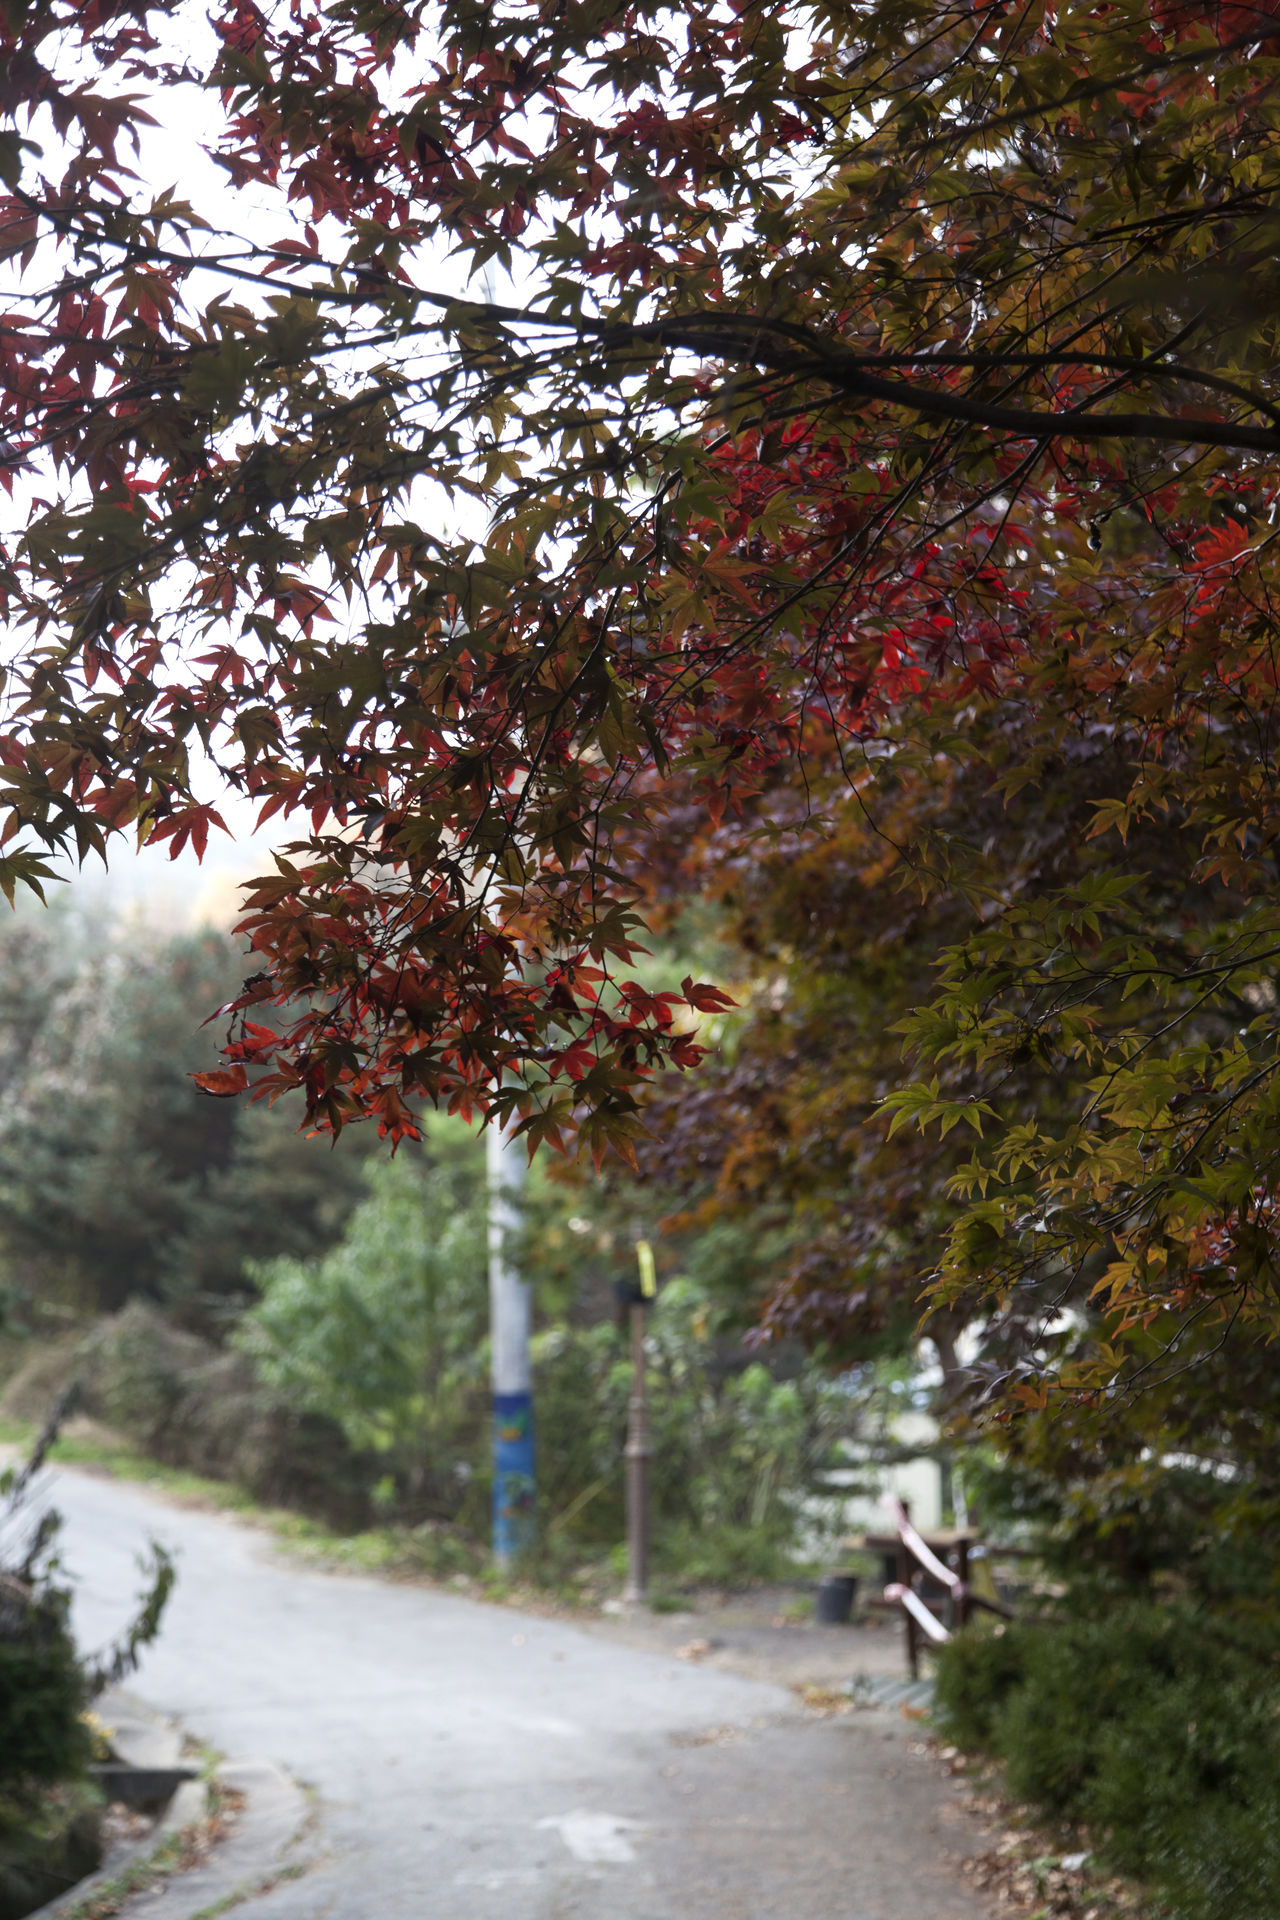 autumn in Maisan Mountain, Muan, Jeonbuk, South Korea Autumn Autumn Autumn Colors Beauty In Nature Branch Day Fall Forest Growth Lane Leaf Maisan Nature No People Outdoors Scenics The Way Forward Tranquil Scene Tranquility Tree Walkway